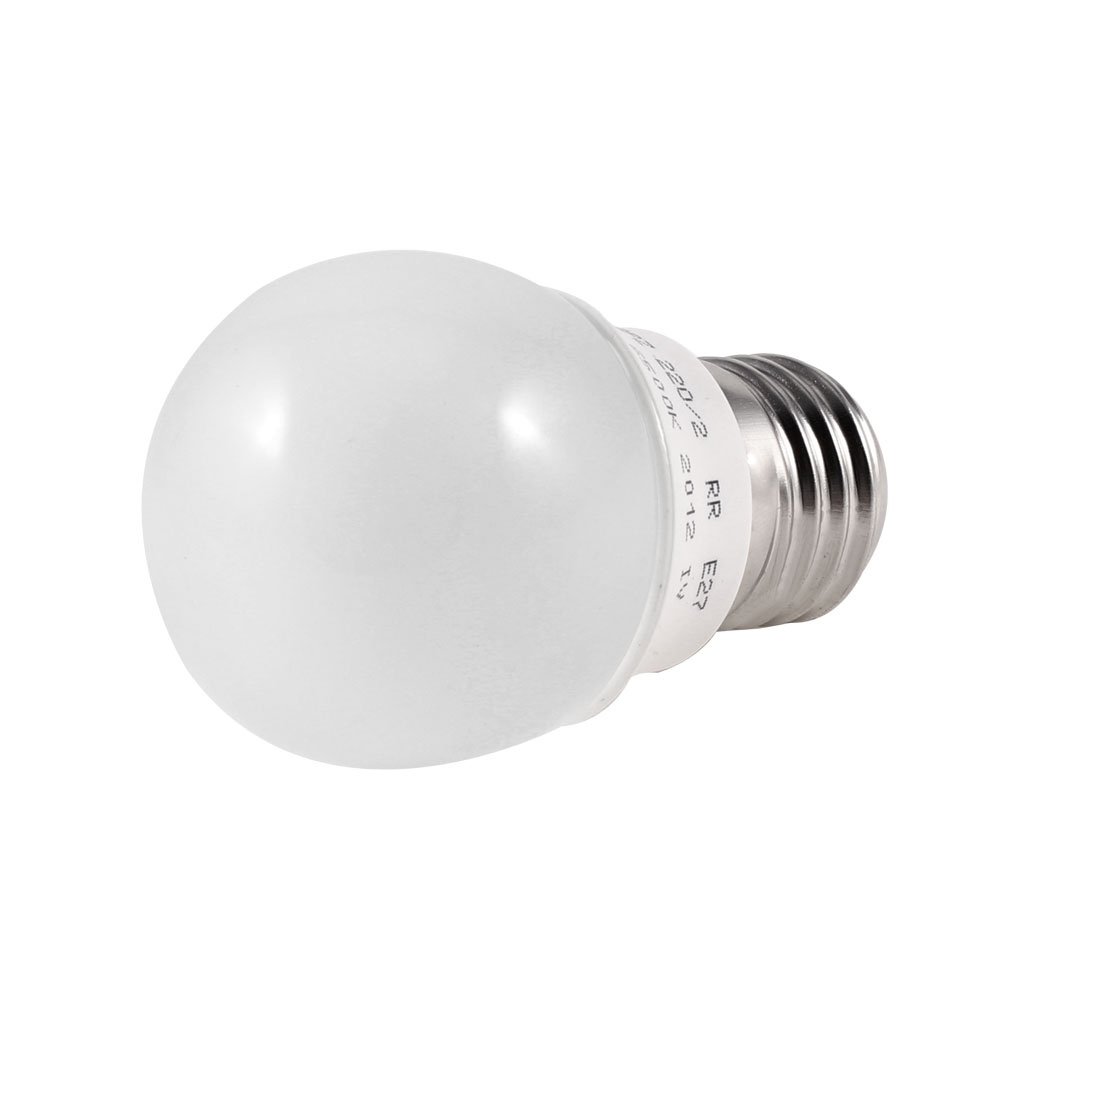 Bathroom 2W 6500K 220V E27 Socket White LED Globe Ball Bulb 45mm Dia